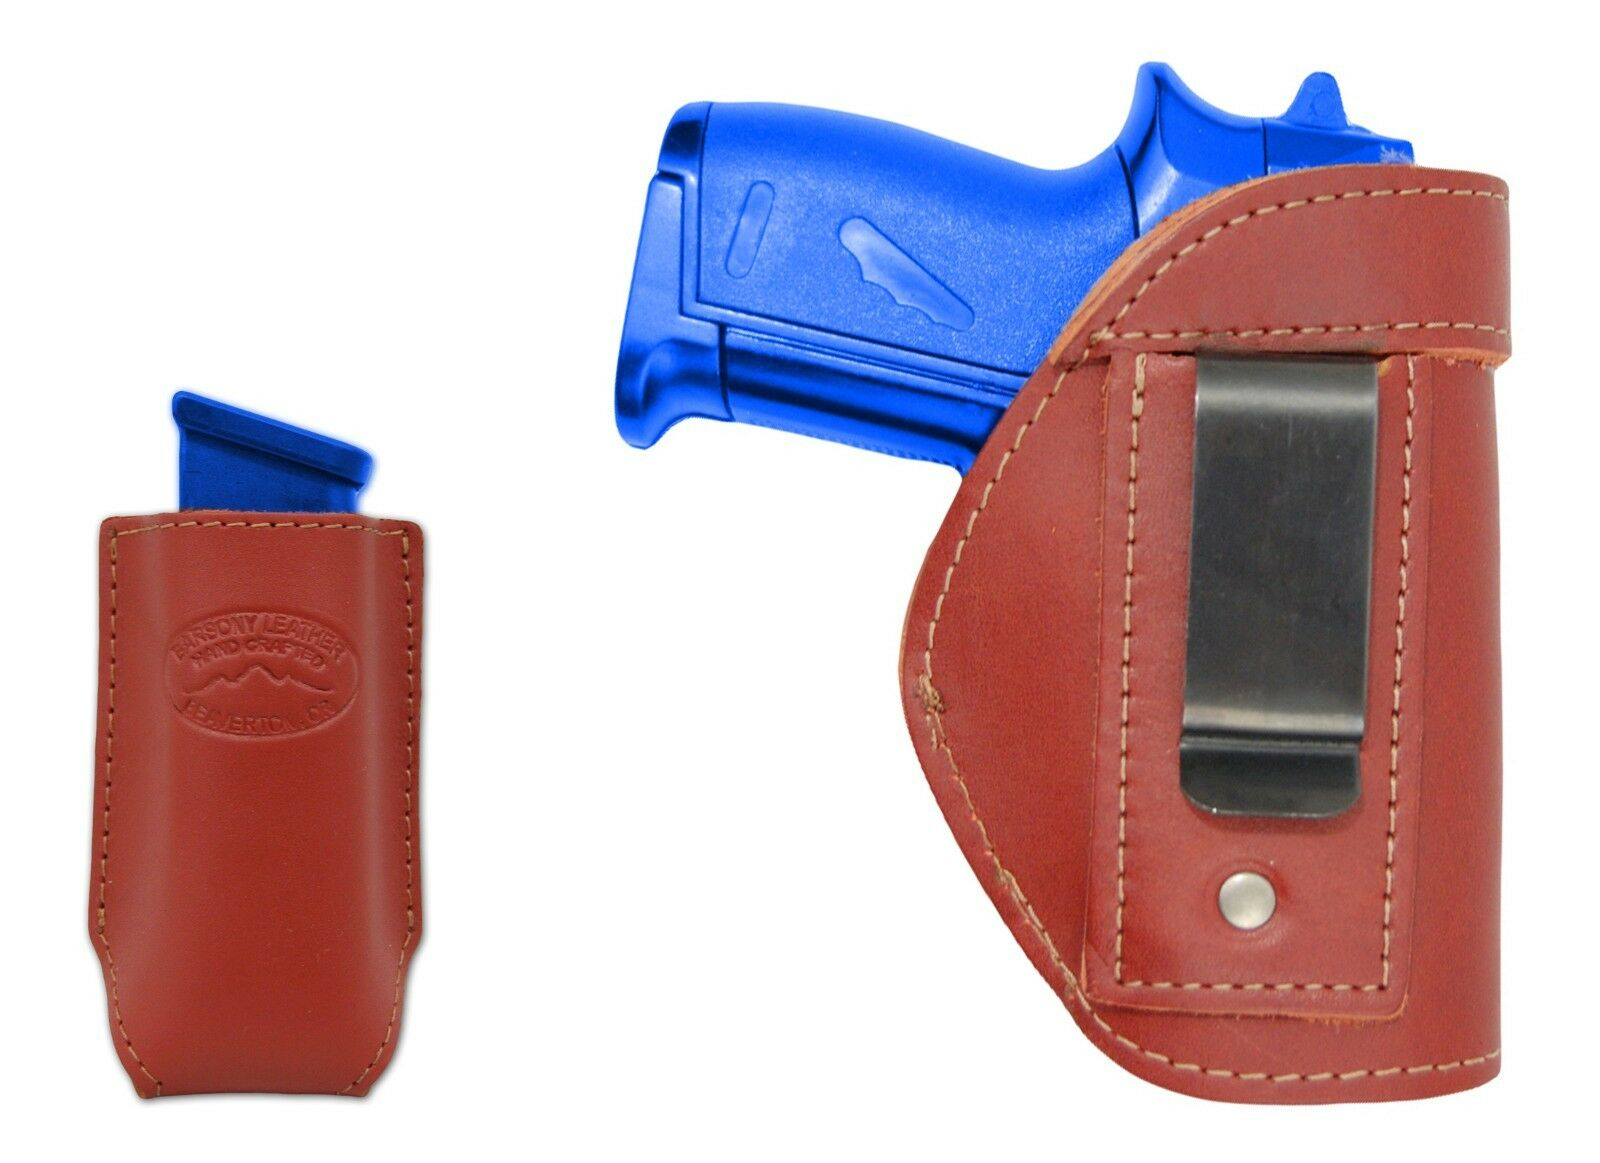 New Barsony Burgundy Leather IWB Holster + Mag Pouch Colt 380 Ultra Compact 9mm